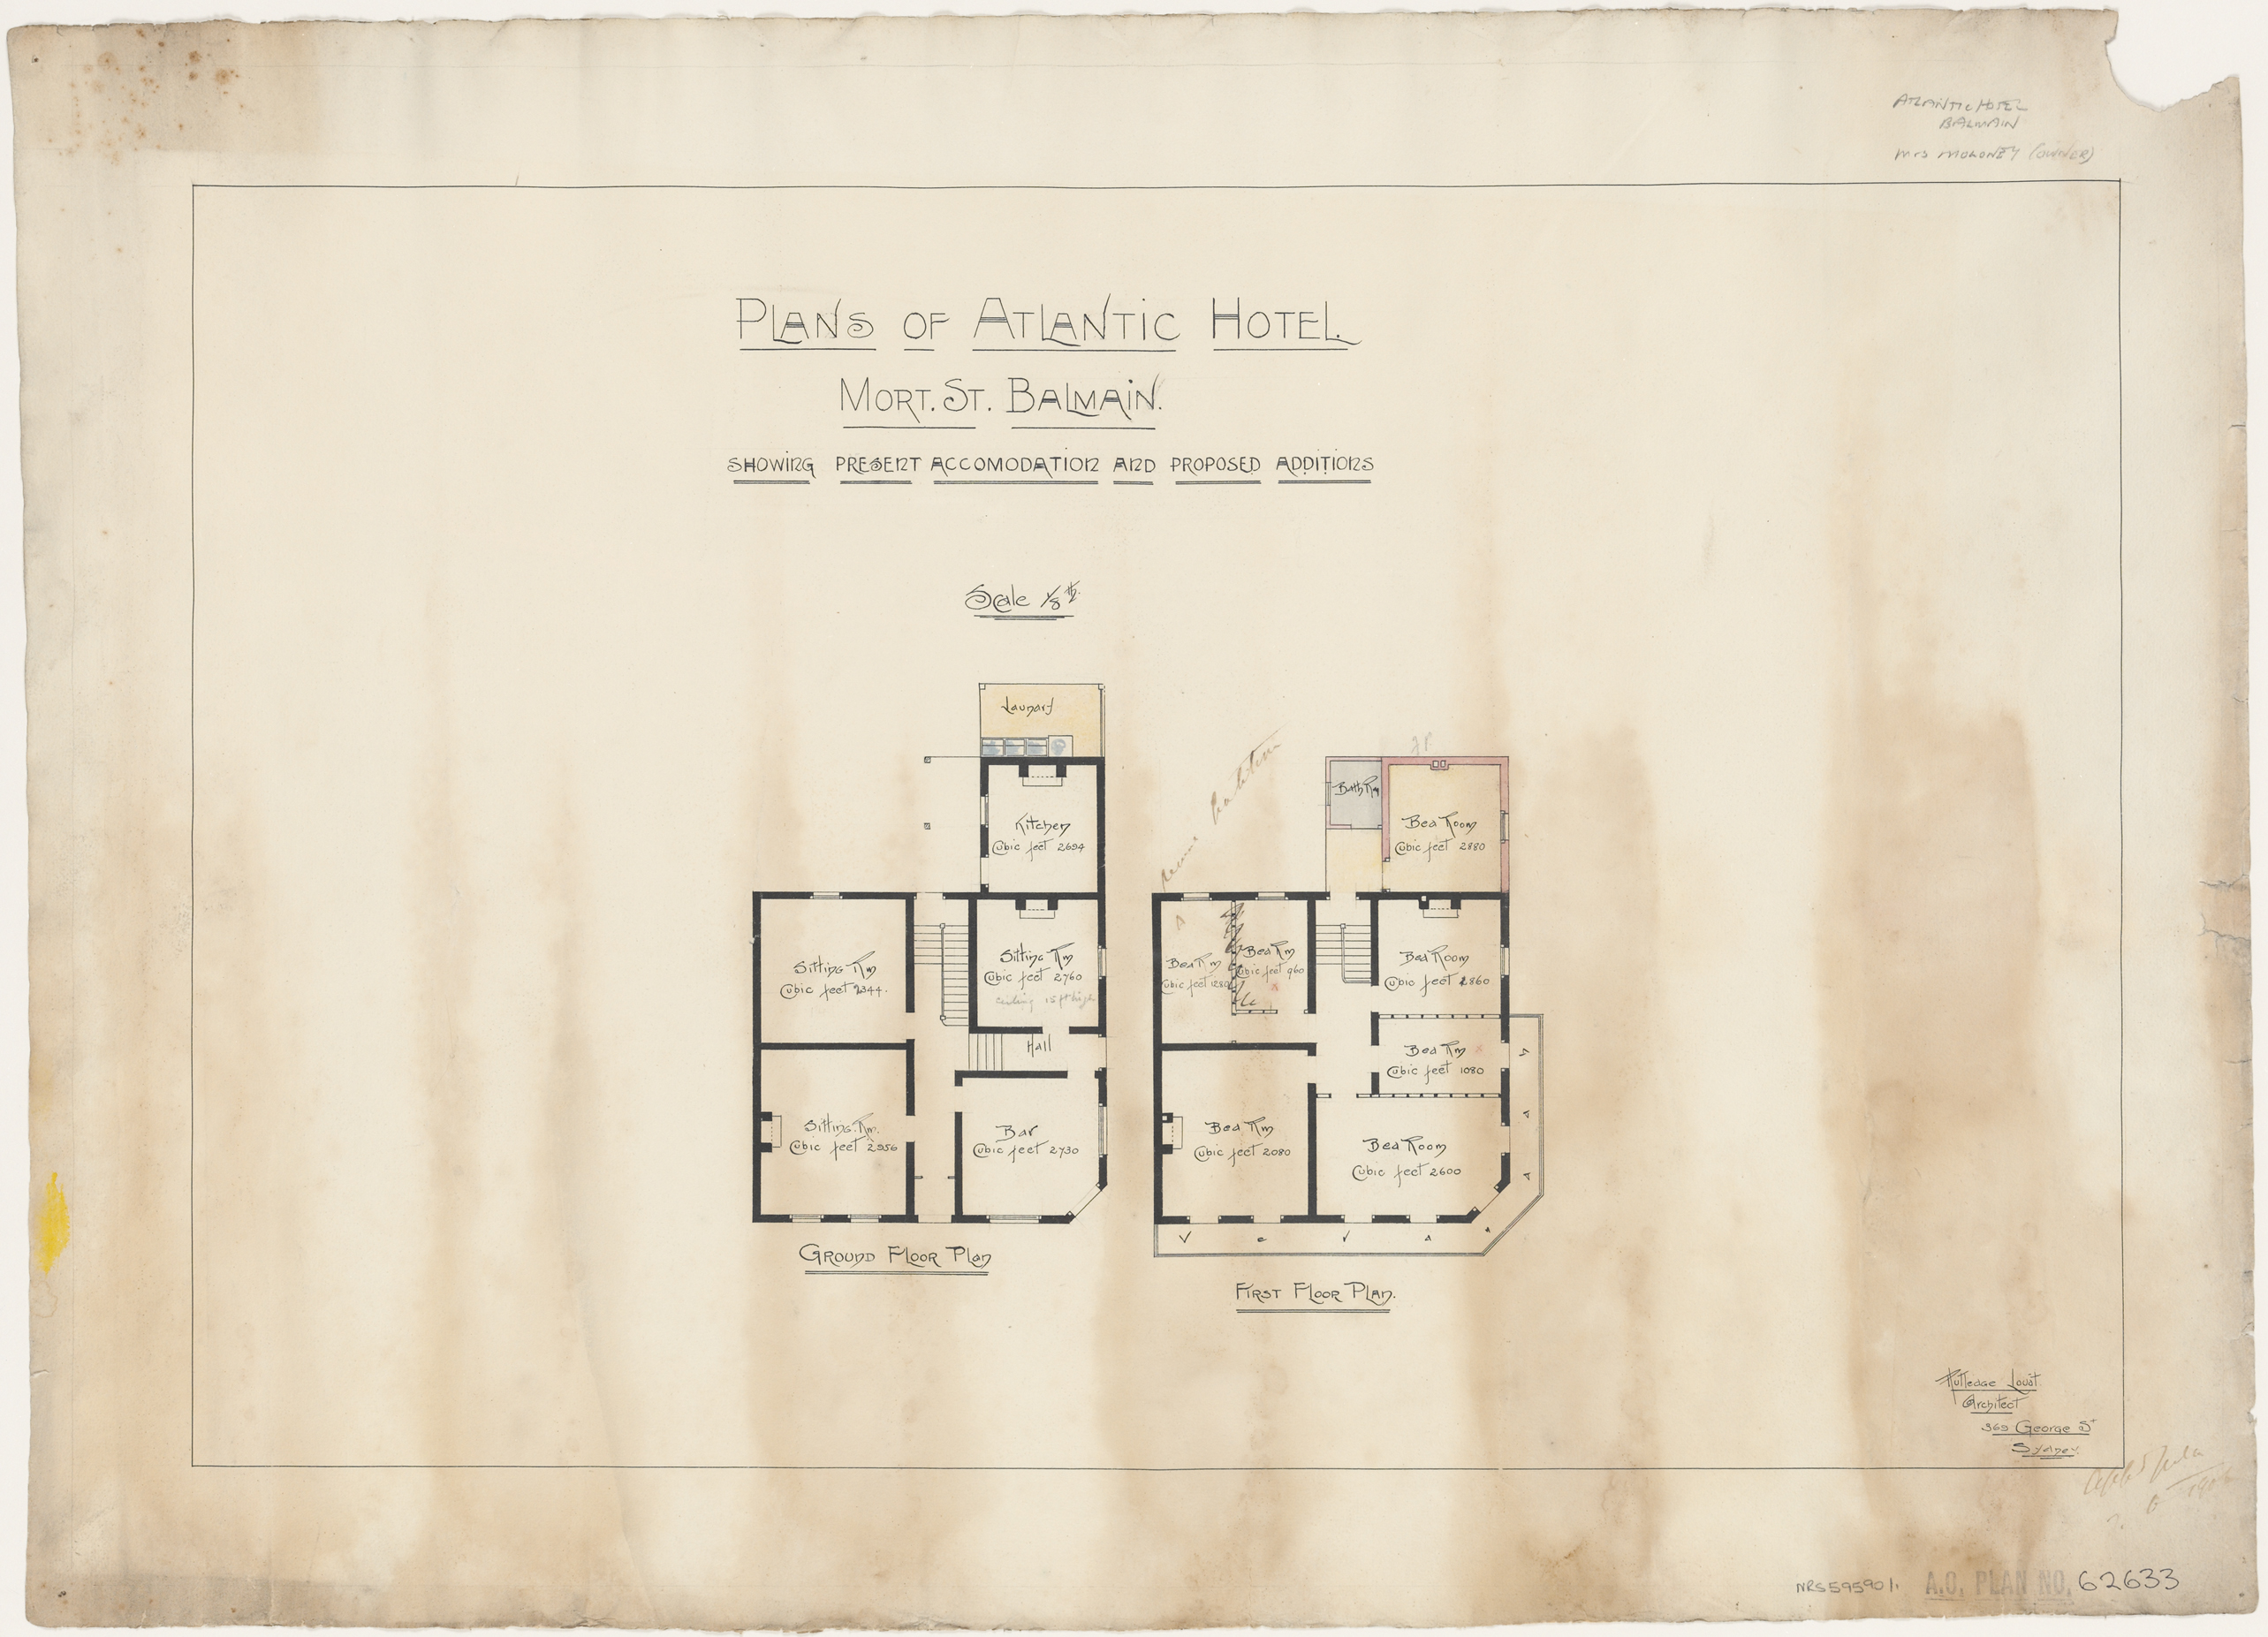 Atlantic Hotel, Mort Street, Balmain, Present accommodation and proposed additions, ground and first floor plan, Applicant/owner, Mrs Moloney, Architect Rutledge Lovat, 369 George Street, Sydney, Application 7 June 1906